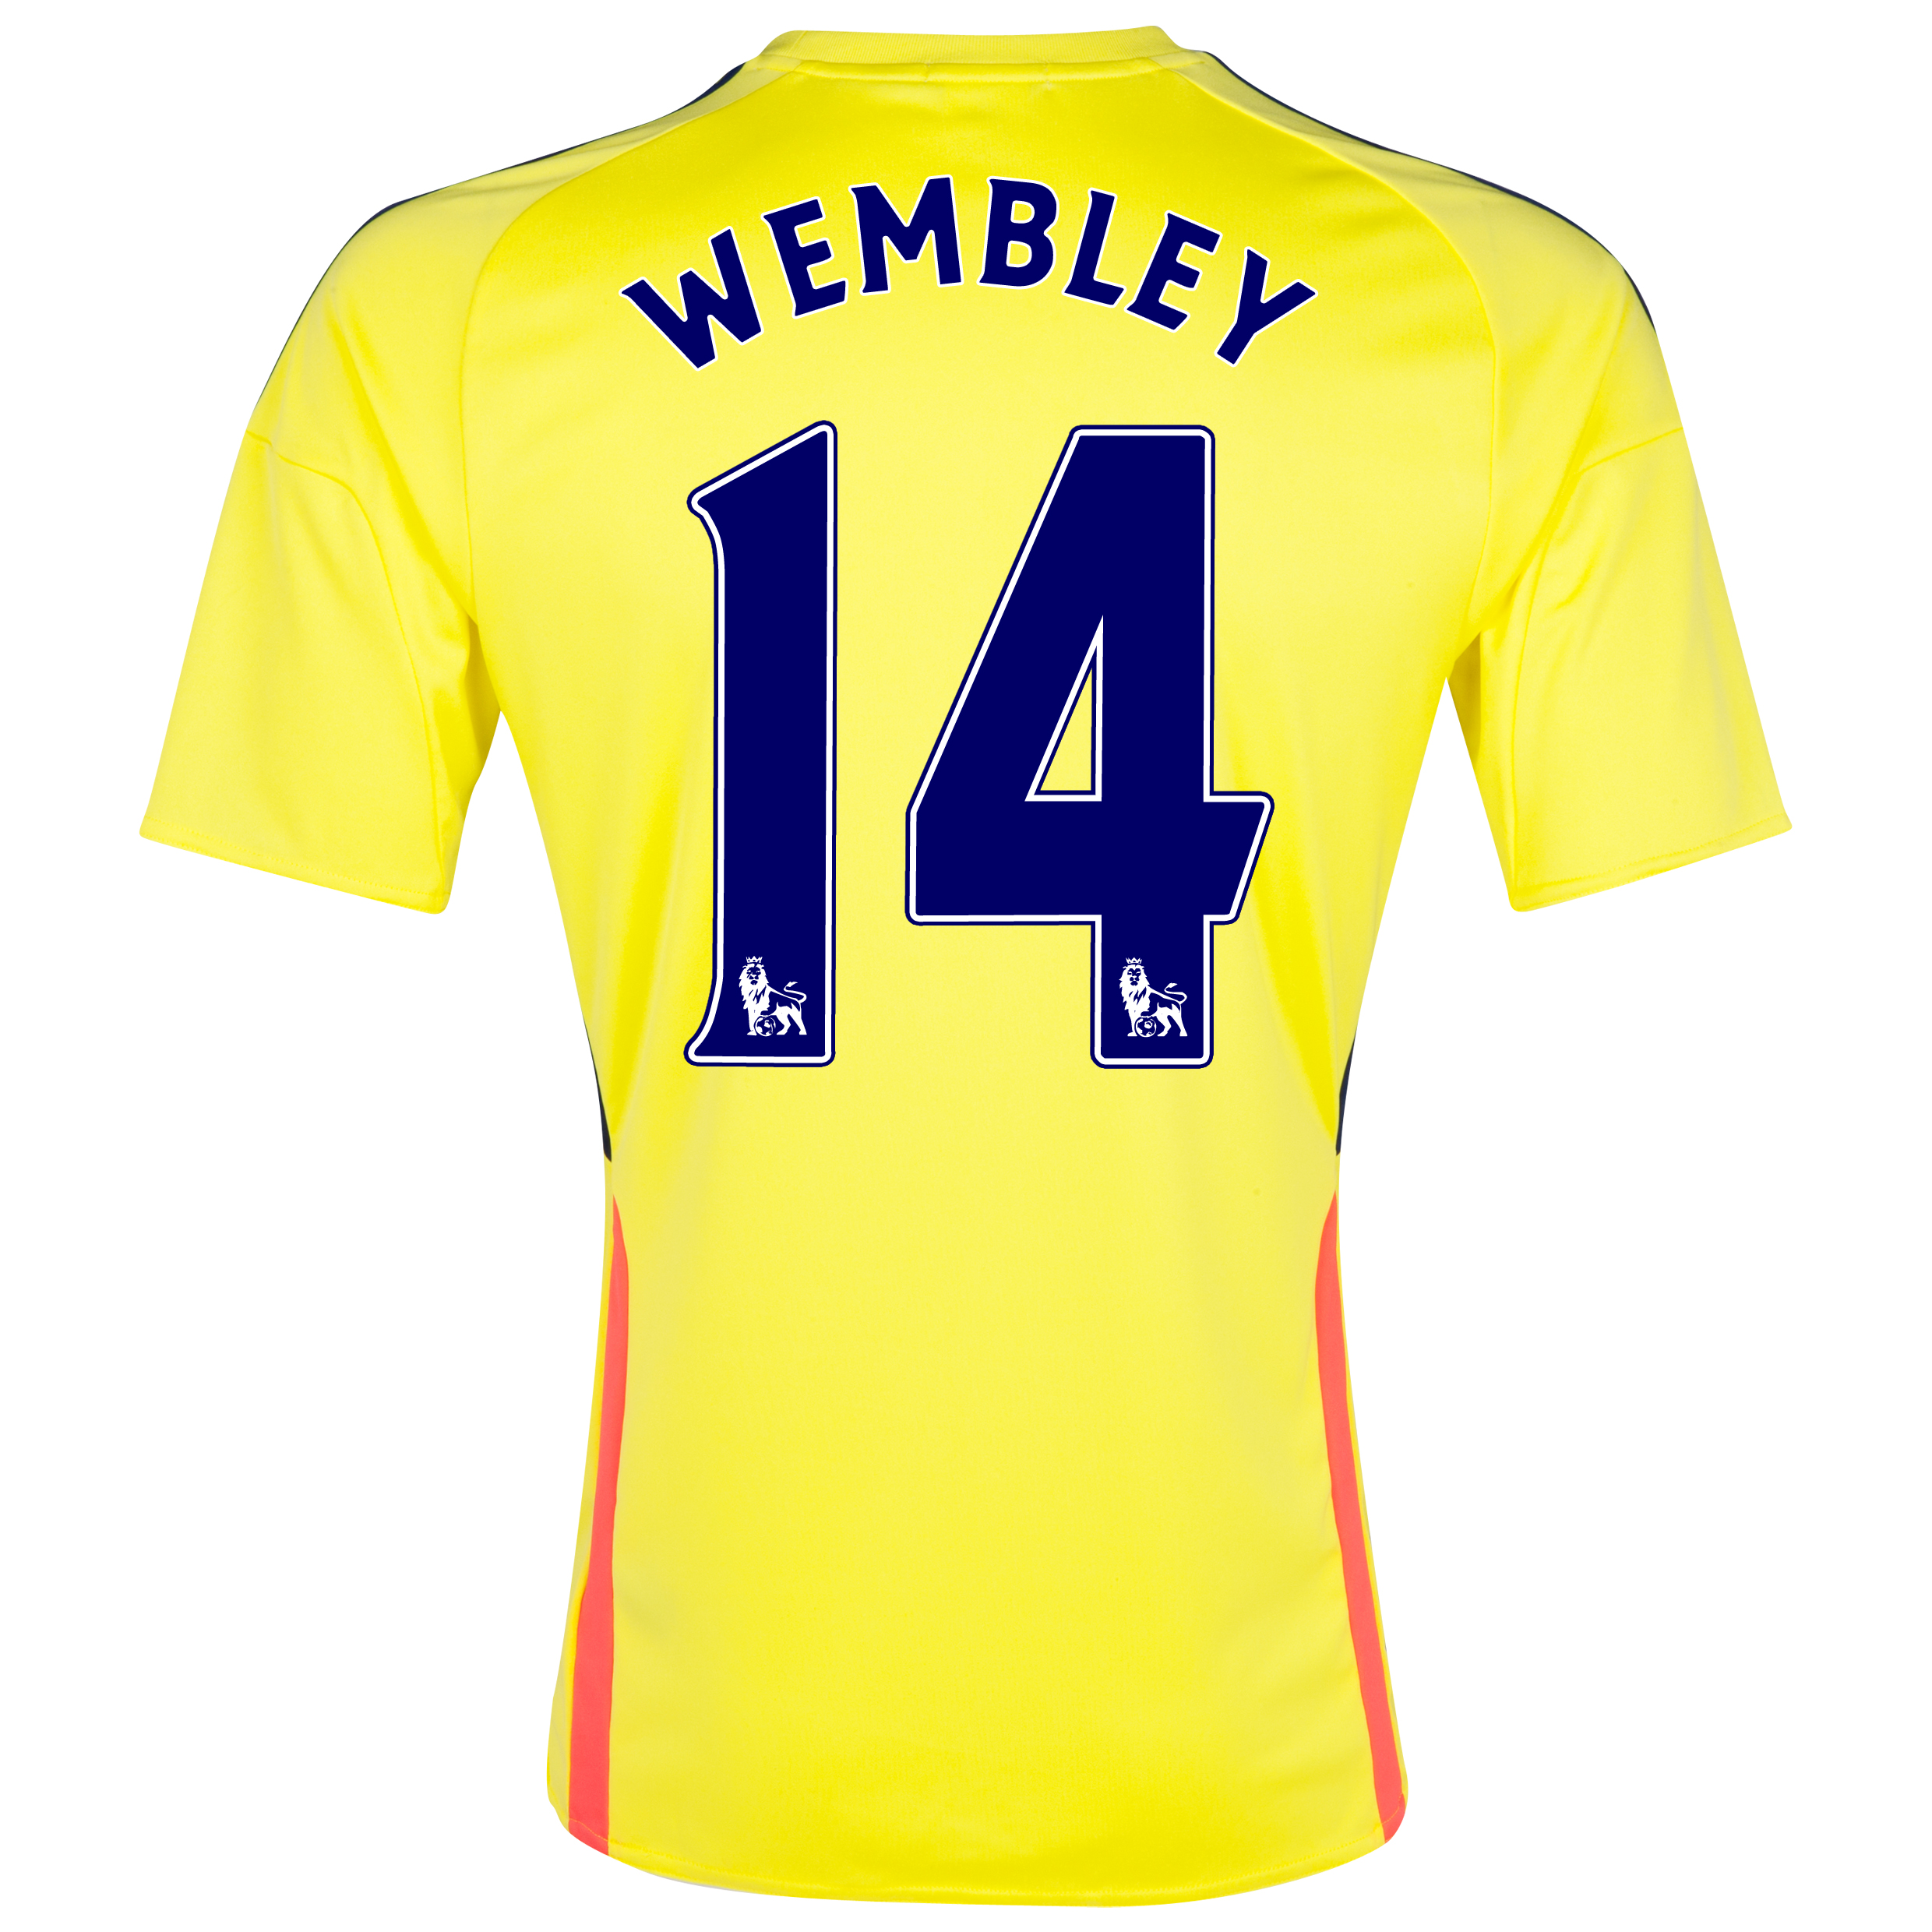 Sunderland Away Shirt 2013/14 - Junior with Wembley 14 printing